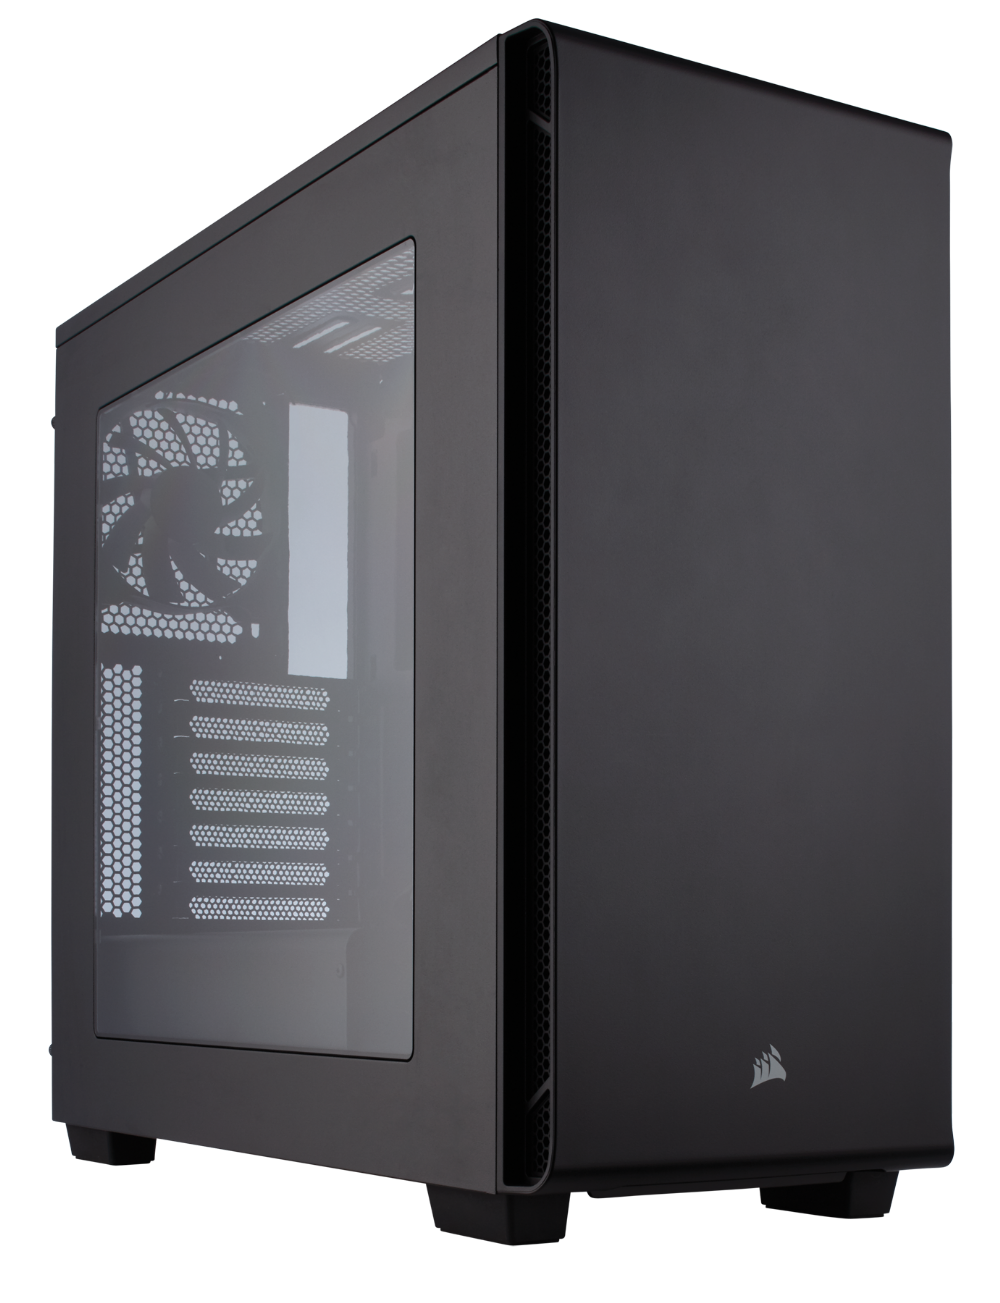 THÙNG CASE CORSAIR - 270R Black Window - CC-9011105-WW